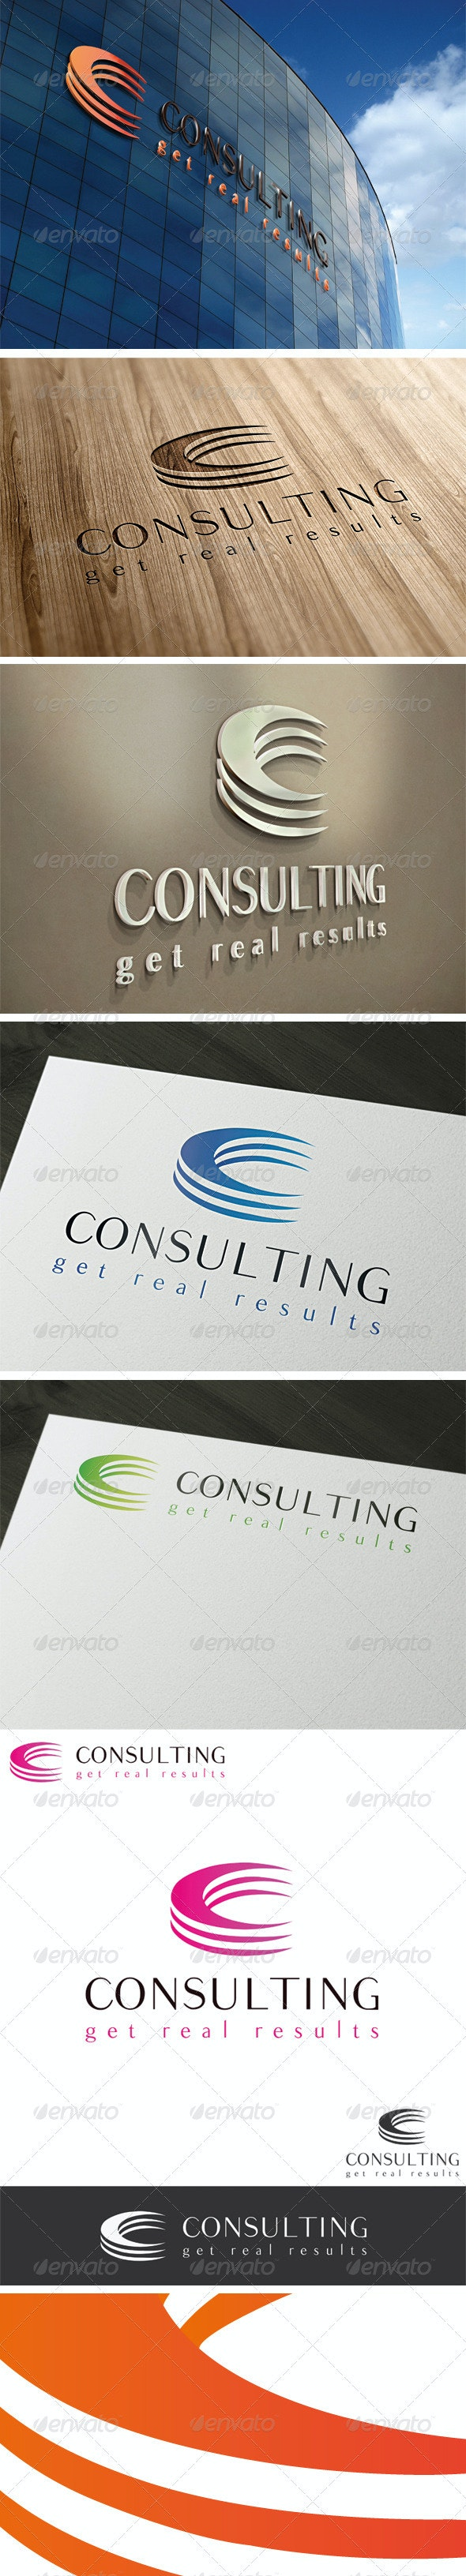 Consulting Letter C Logo Template - Letters Logo Templates